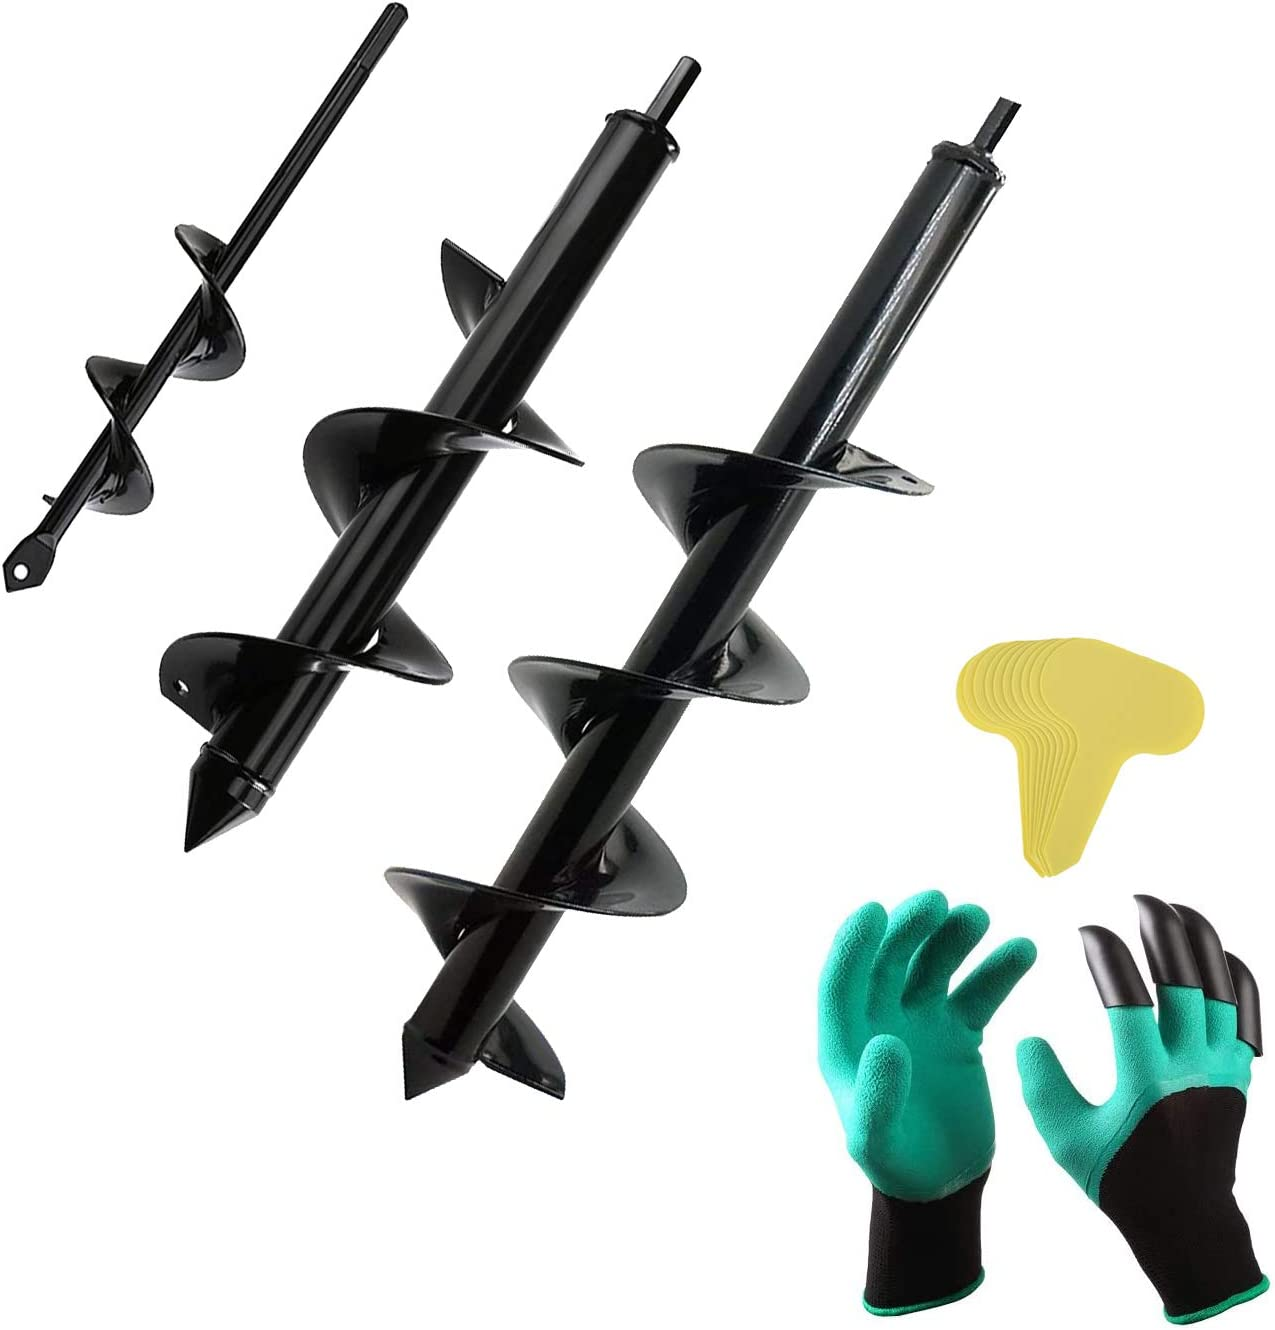 """Auger Drill Bit Set for Planting - Garden Spiral Hole Drill Planter, Bulb & Bedding Plant Augers, Post or Umbrella Hole Digger for 3/8"""" Hex Drive Drill"""